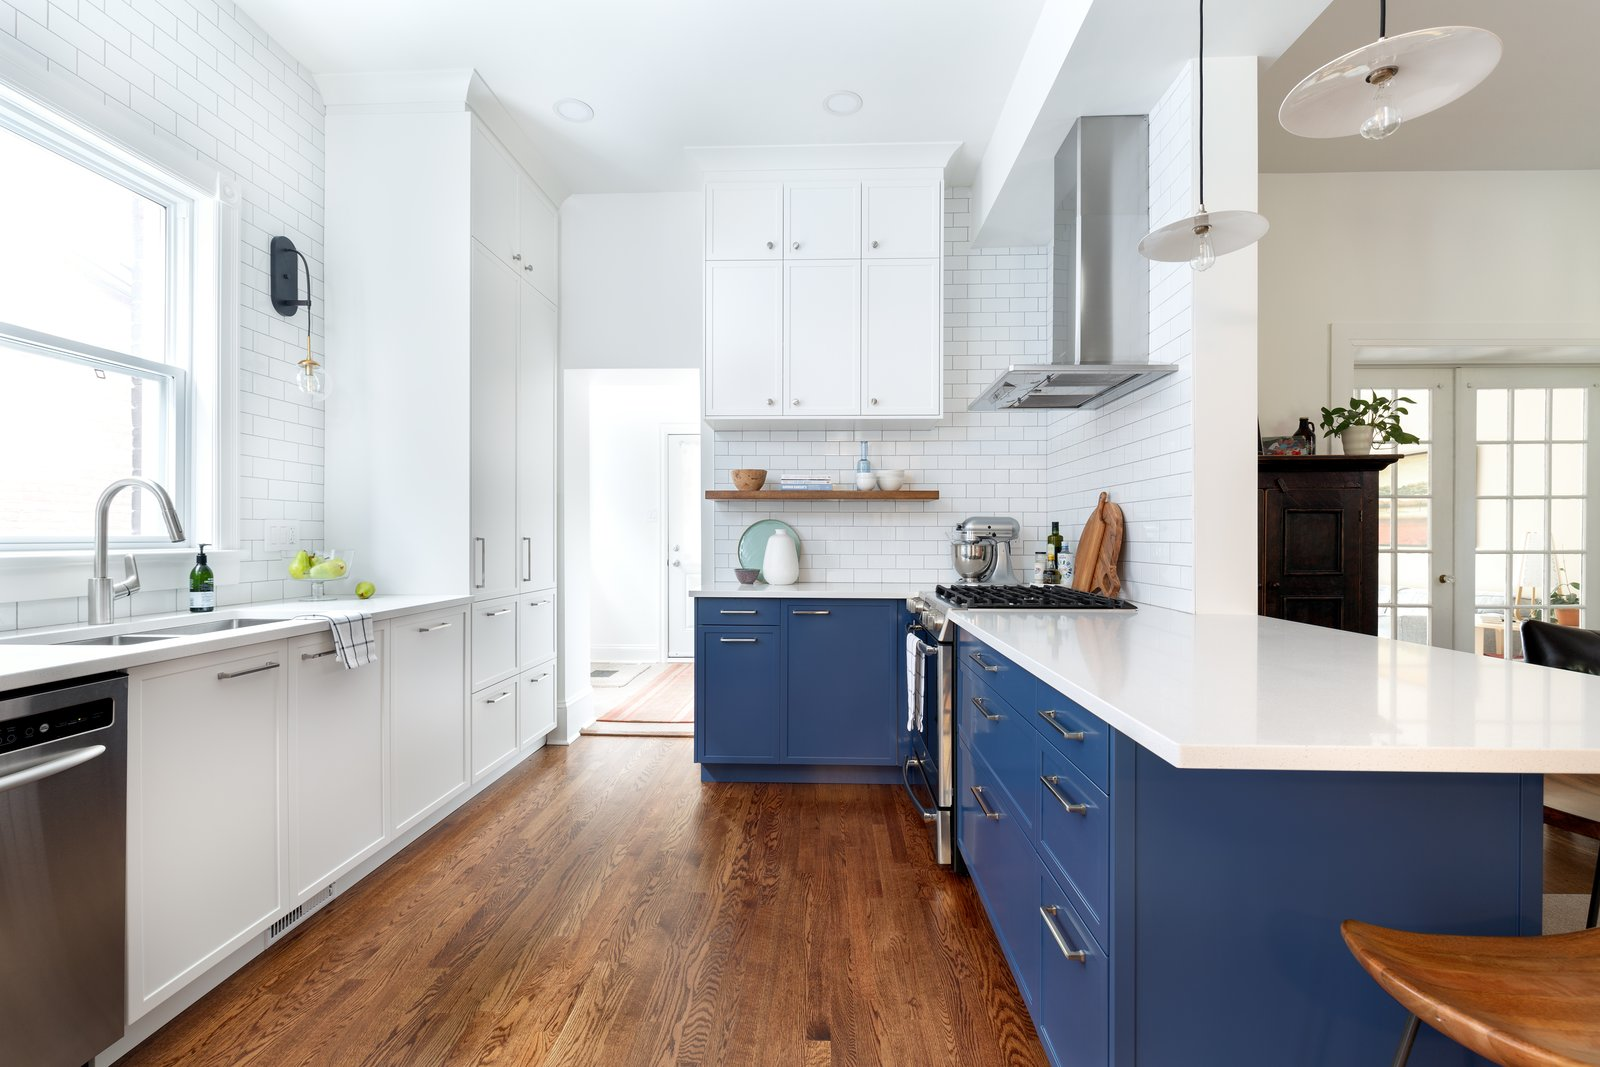 Custom Kitchen Cabinets And Countertops 4 Ways To Revamp Your Kitchen Cabinets For Any Budget - Dwell